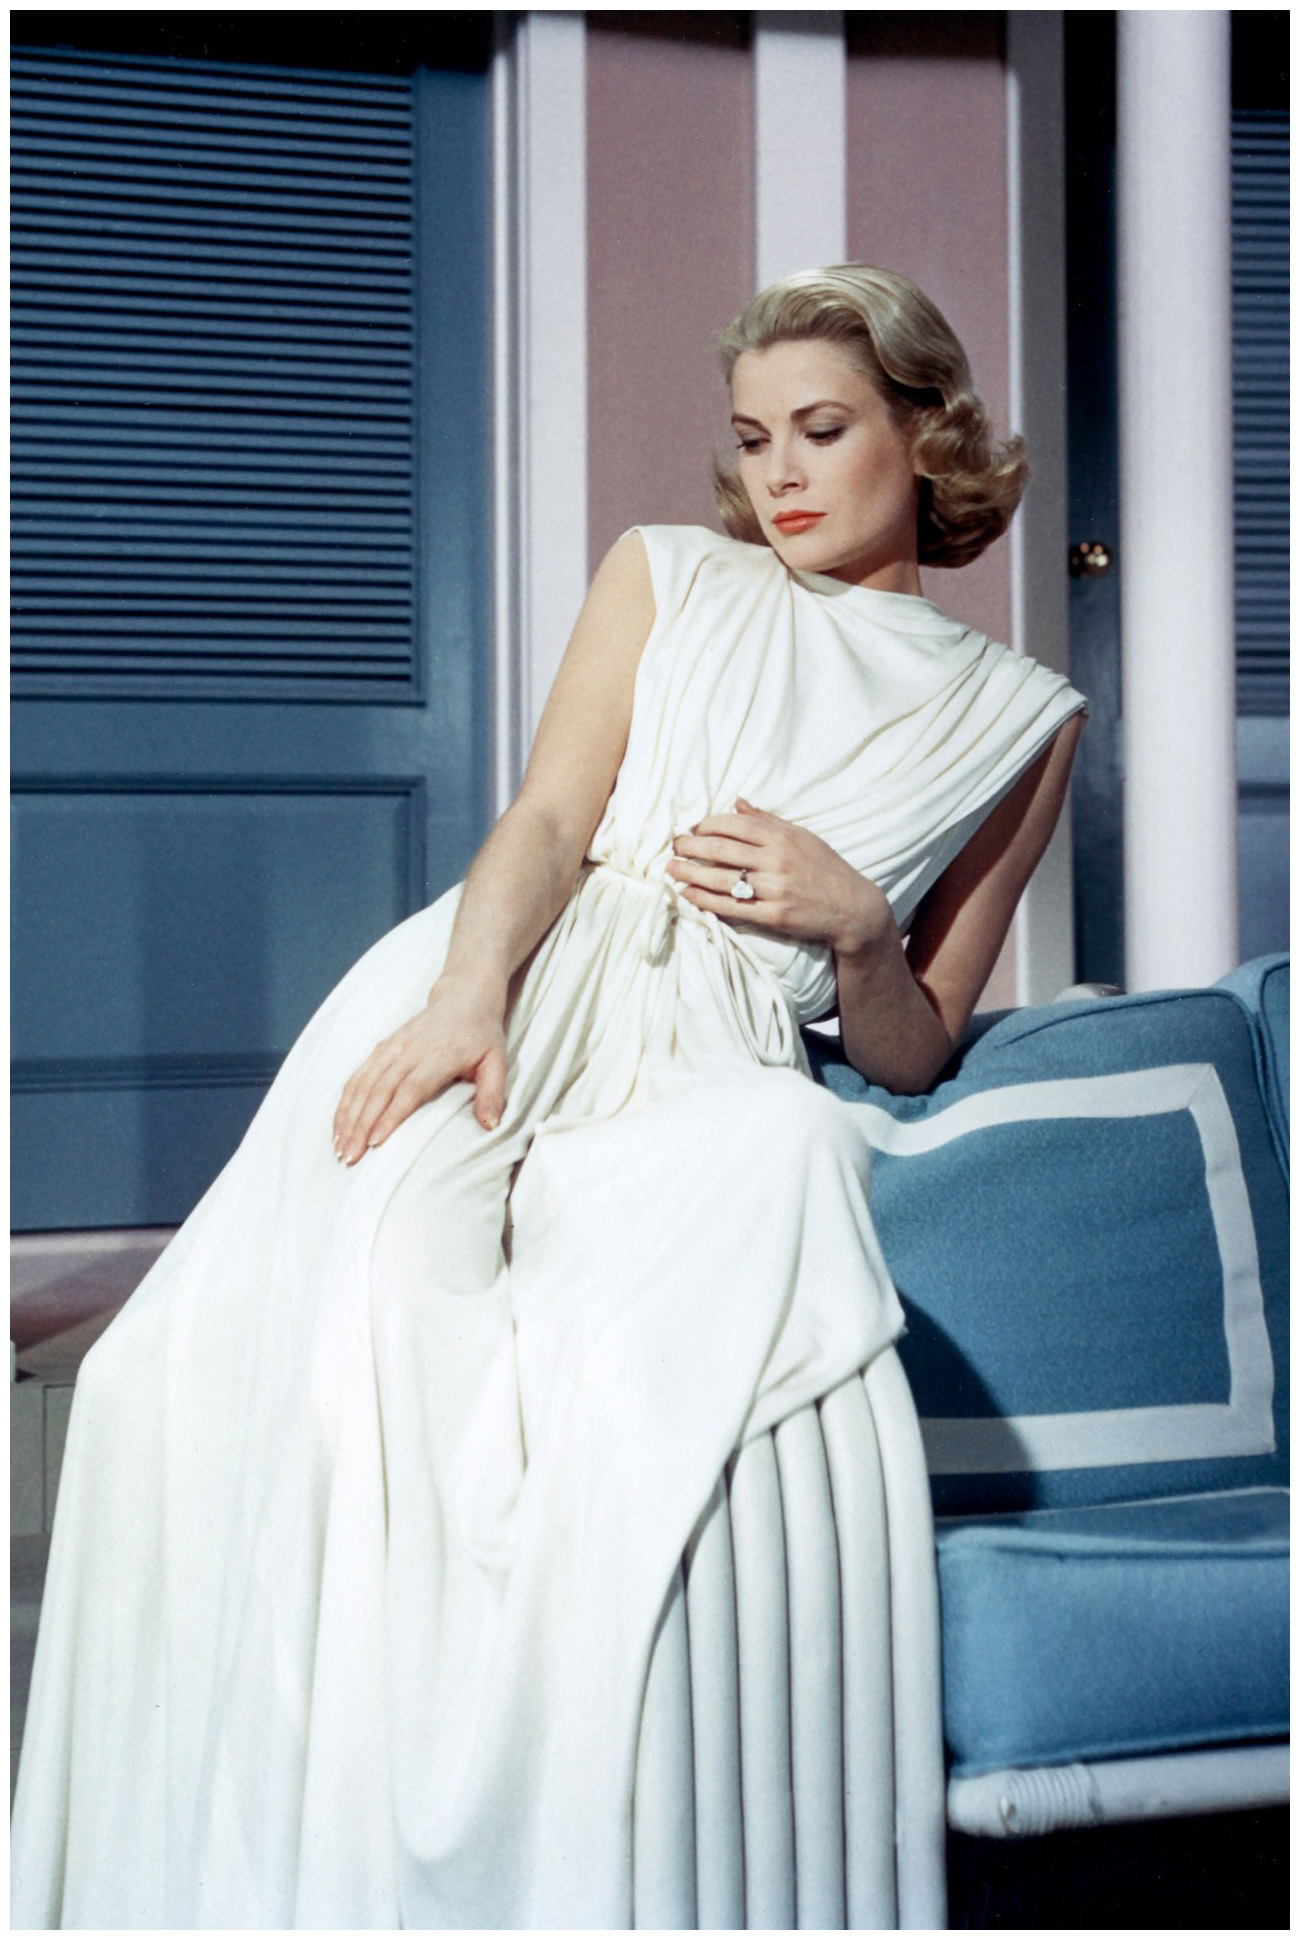 Grace kelly 1956 film high society pleasurephoto for Grace kelly fenetre sur cour